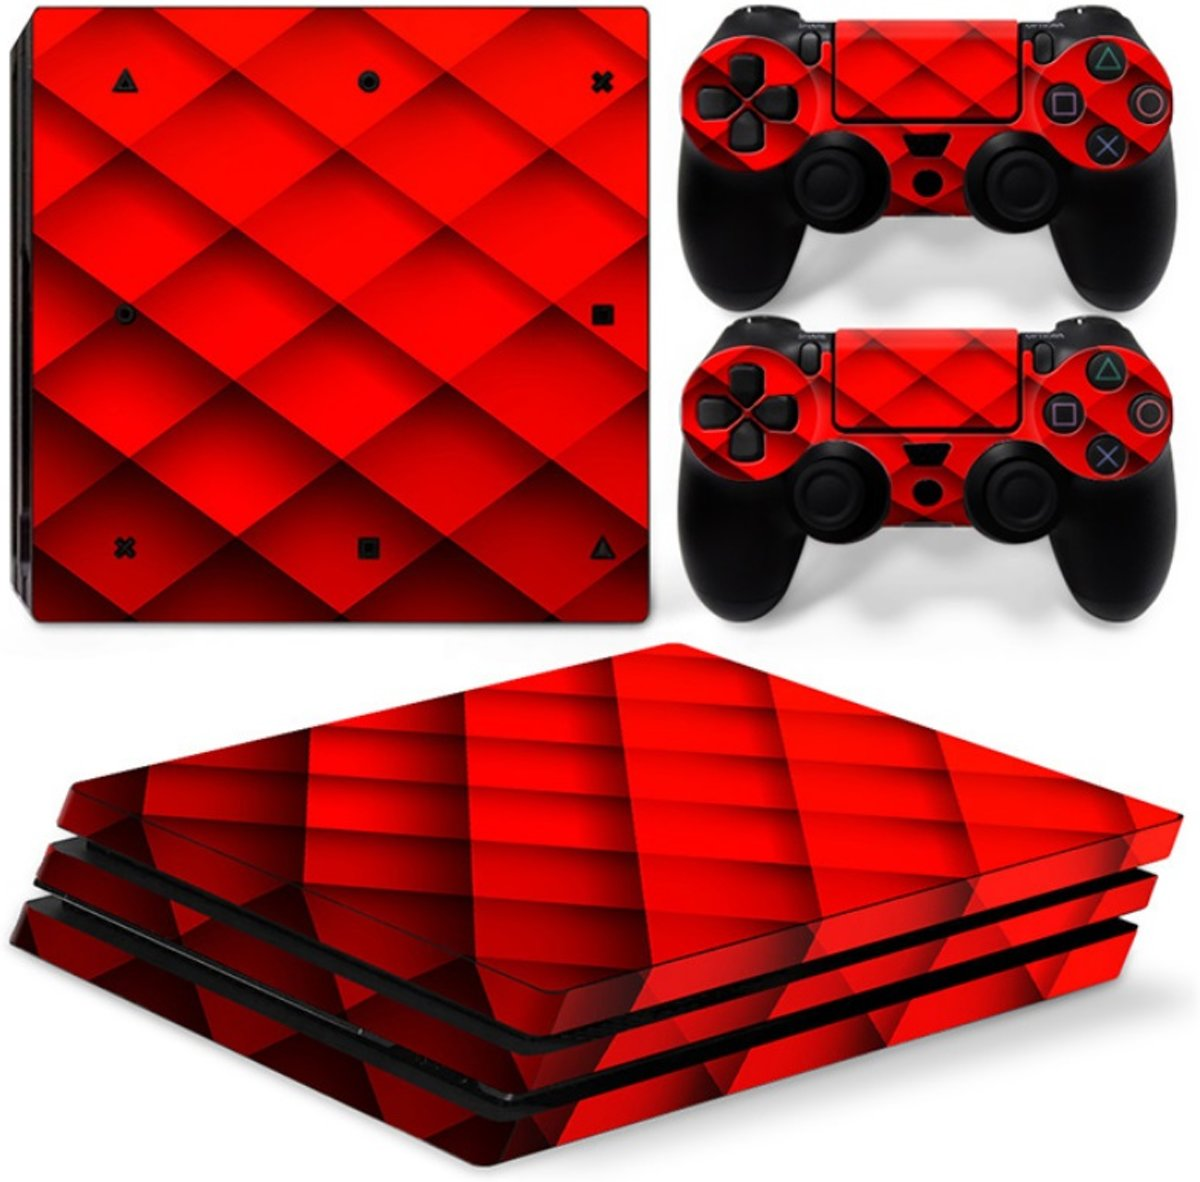 Playstation 4 Pro Sticker | Playstation 4 Pro Console Skin | Red Pattern | Playstation 4 Pro Rood Patroon Skin Sticker | Console Skin + 2 Controller Skins